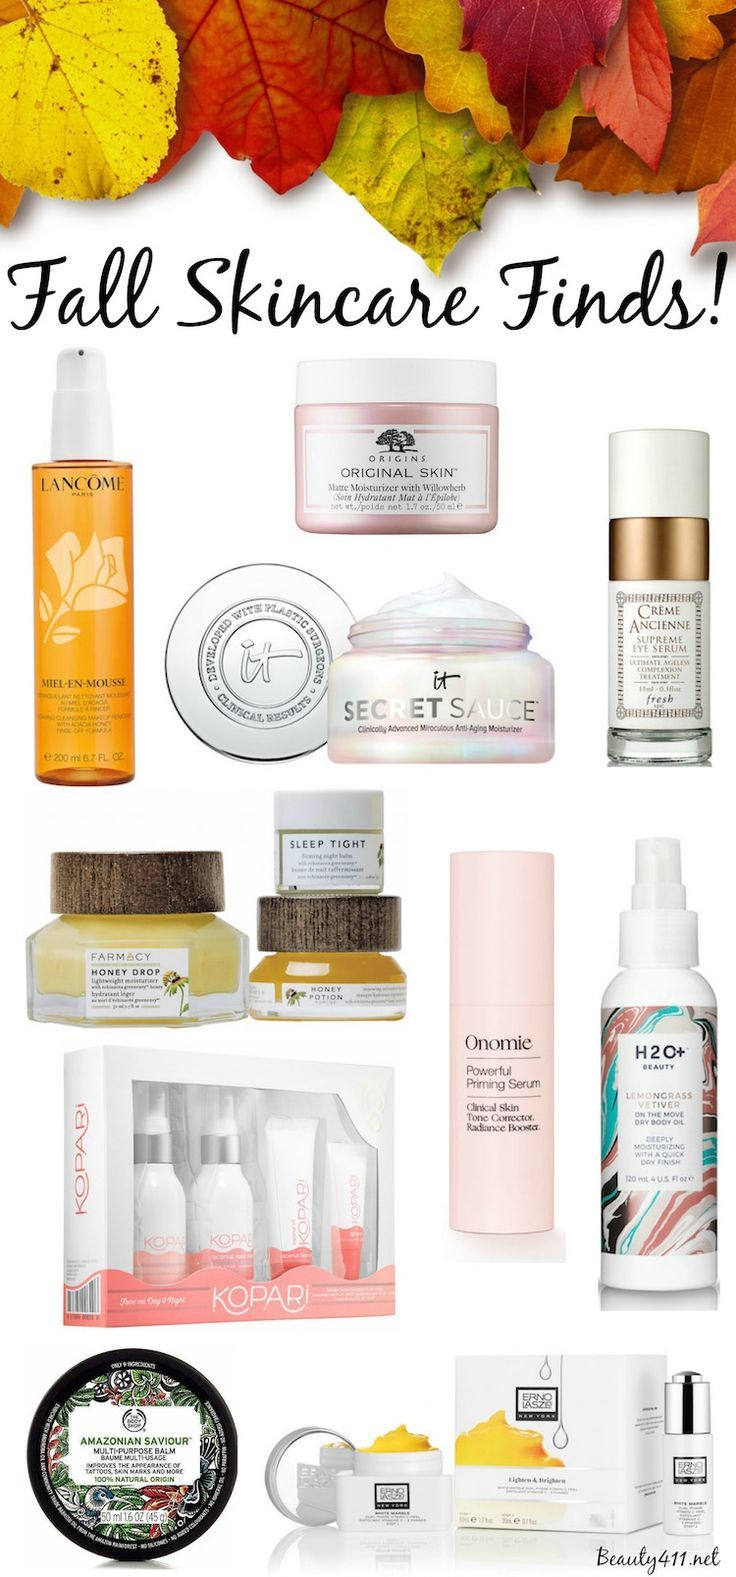 10 Skin Care Tips for Fall pics